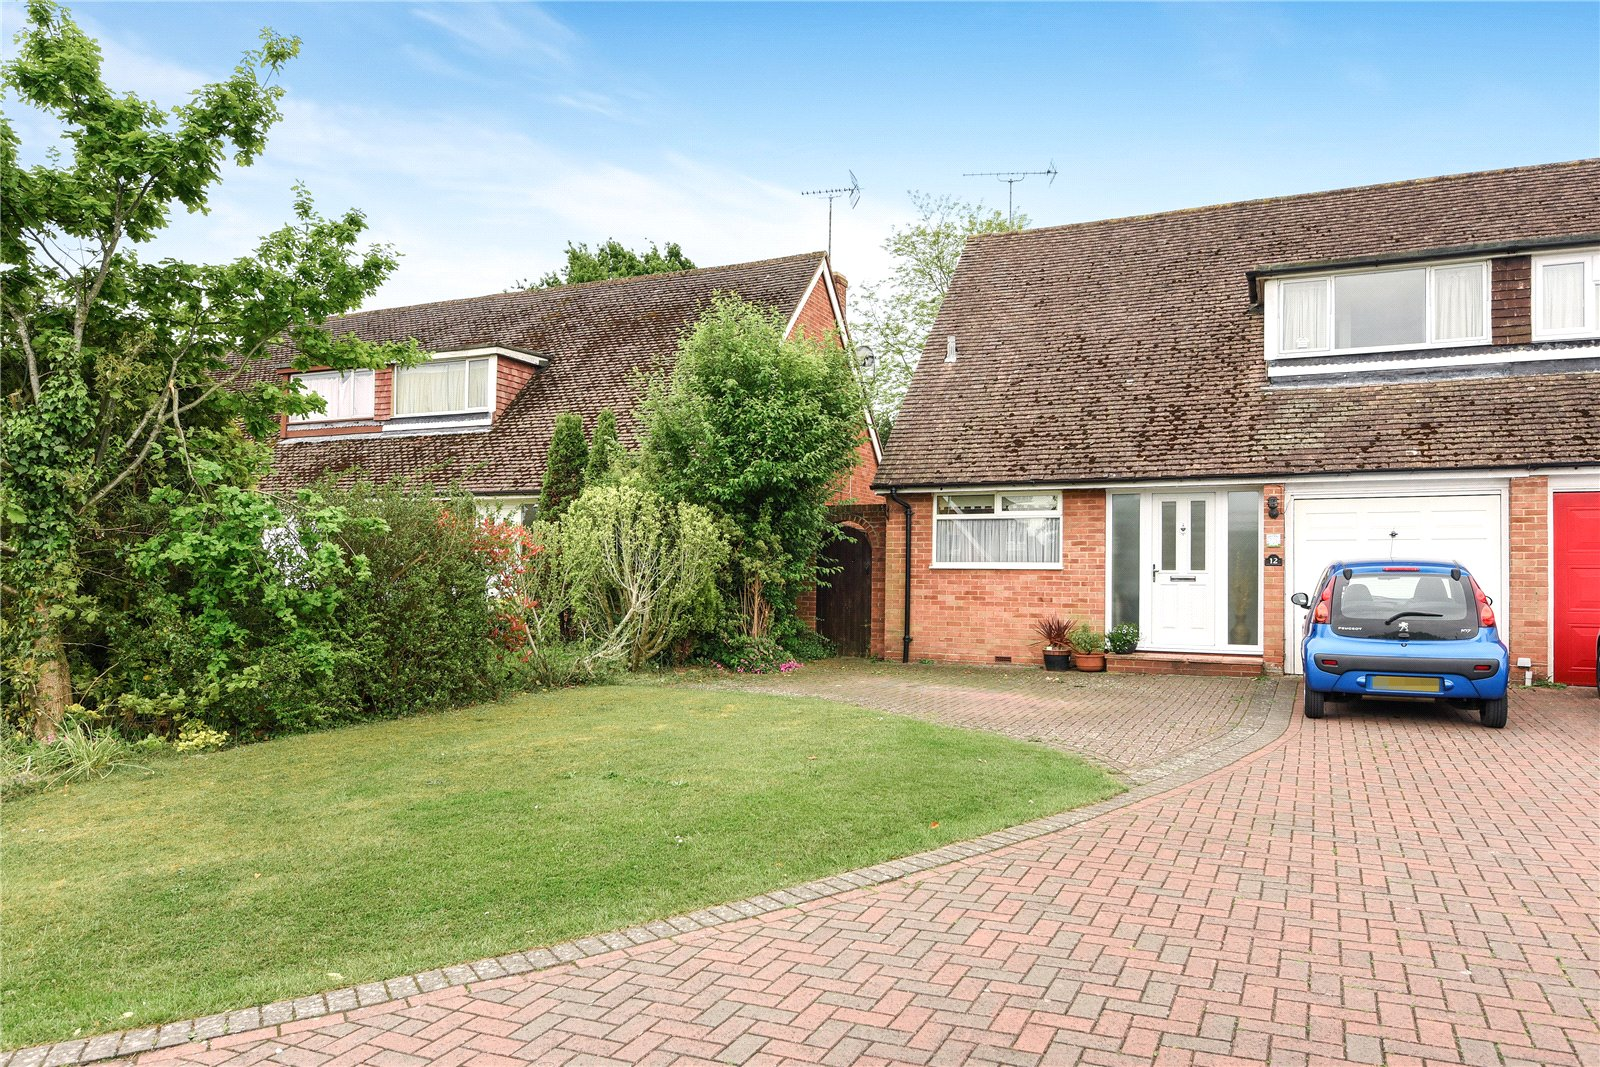 3 Bedrooms Semi Detached House for sale in Deerhurst Avenue, Winnersh, Wokingham, Berkshire, RG41